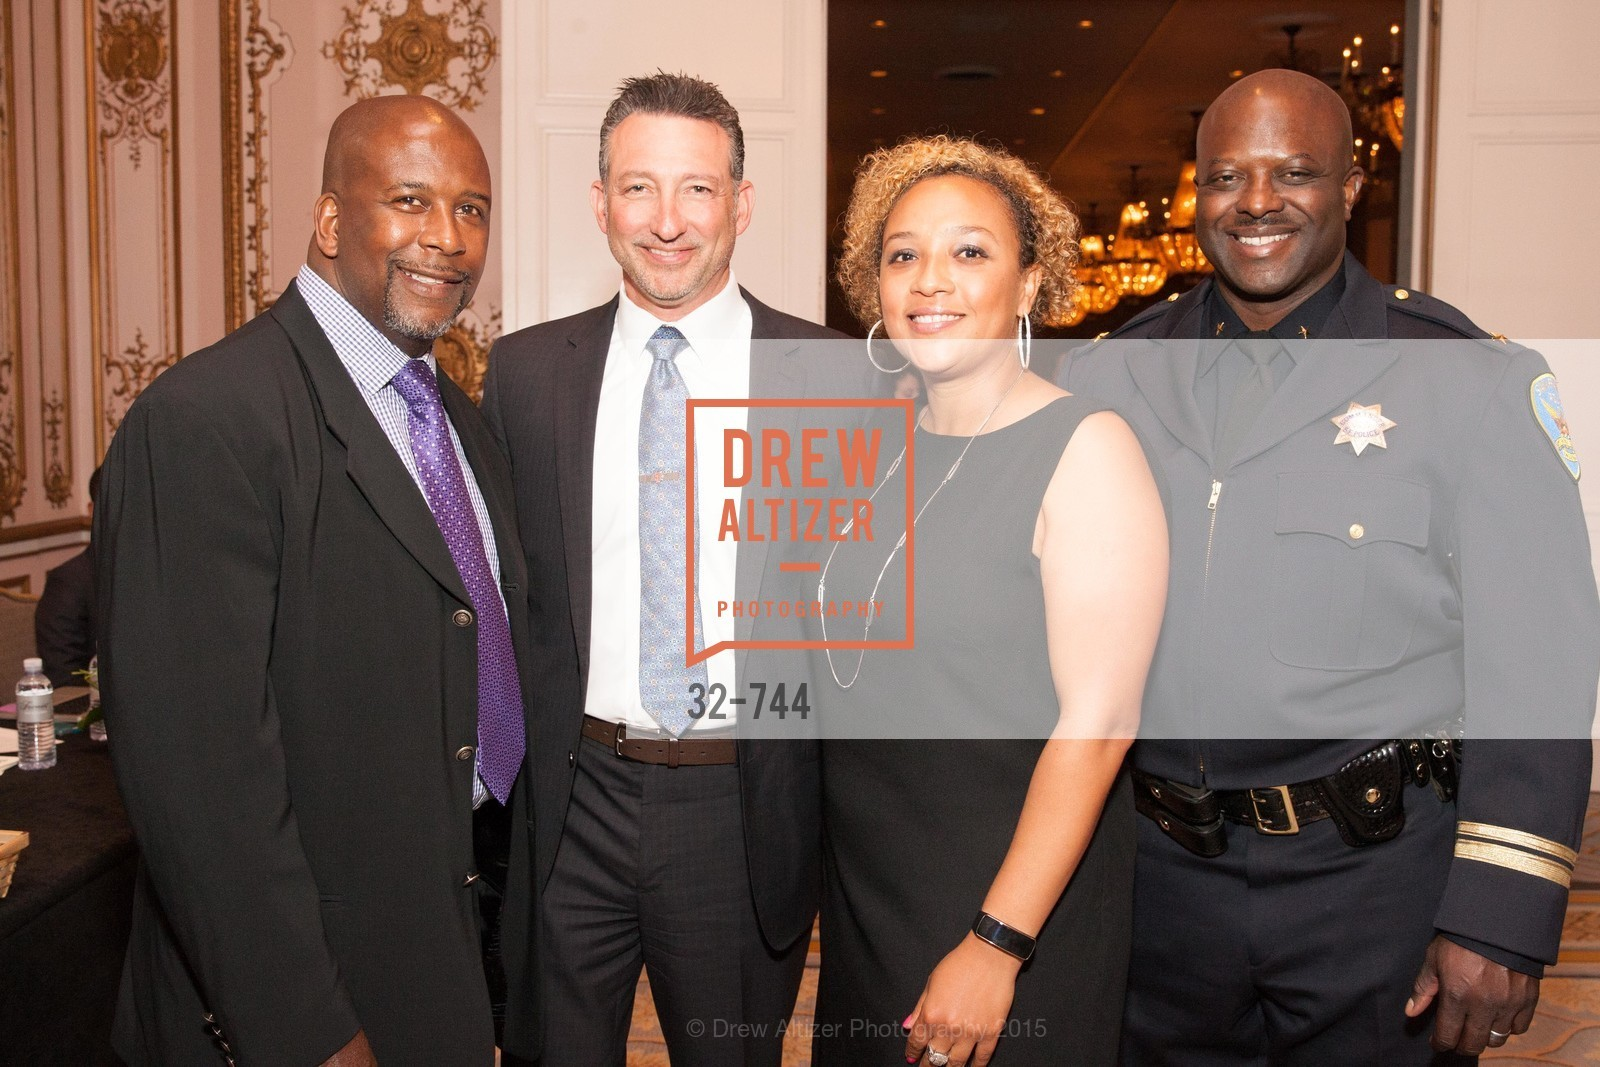 Van Jackson, Frank Carrubba, Maxine Wilson, Mikail Ali, Celebration of Launch of SHYP in Los Angeles, US, May 21st, 2015,Drew Altizer, Drew Altizer Photography, full-service event agency, private events, San Francisco photographer, photographer California